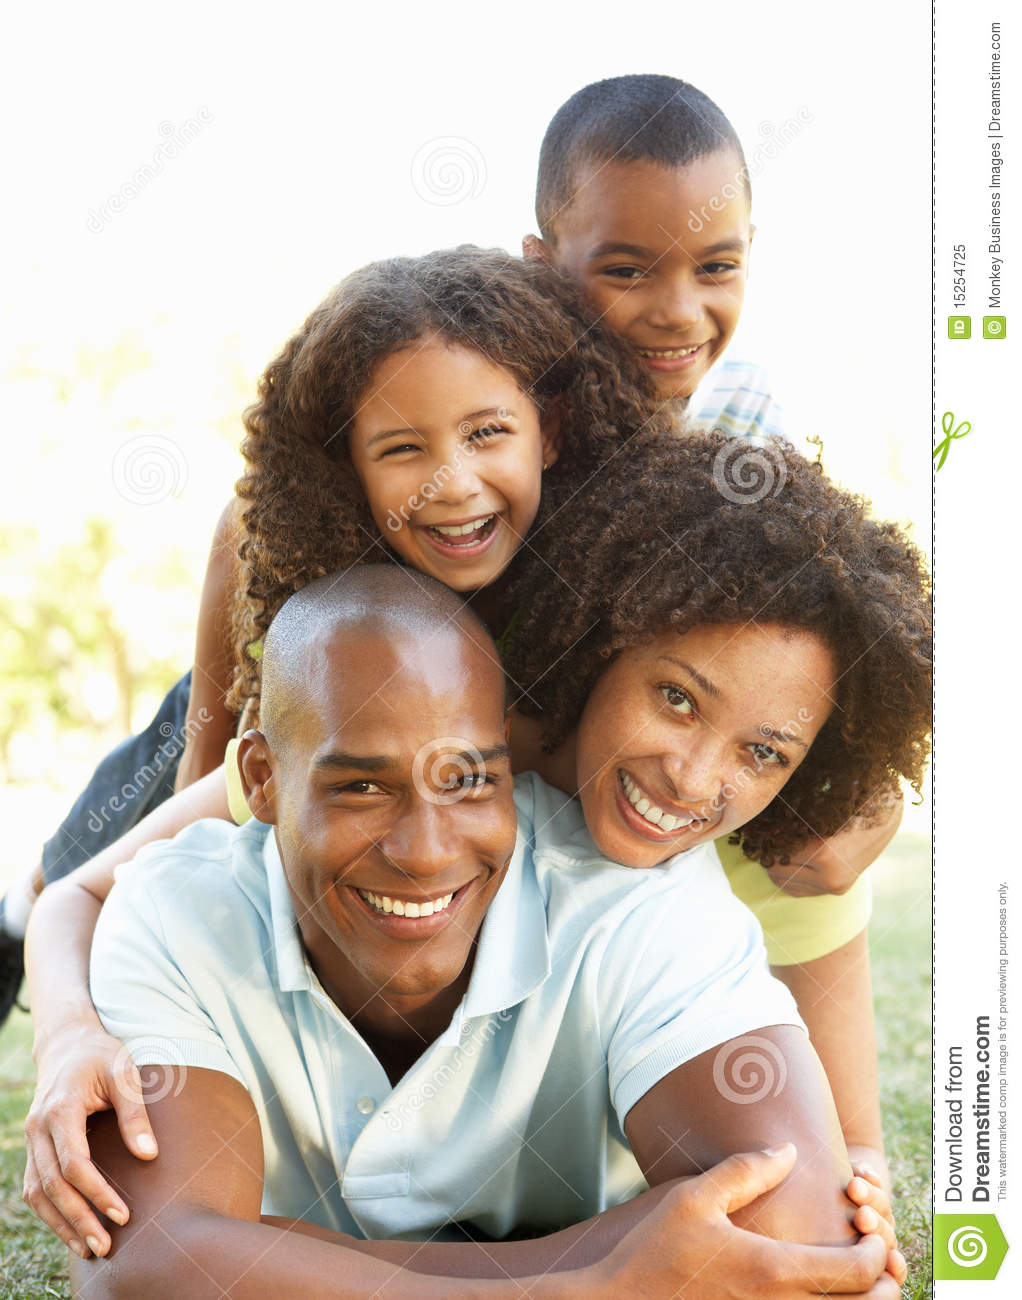 portrait-happy-family-piled-up-park-1525